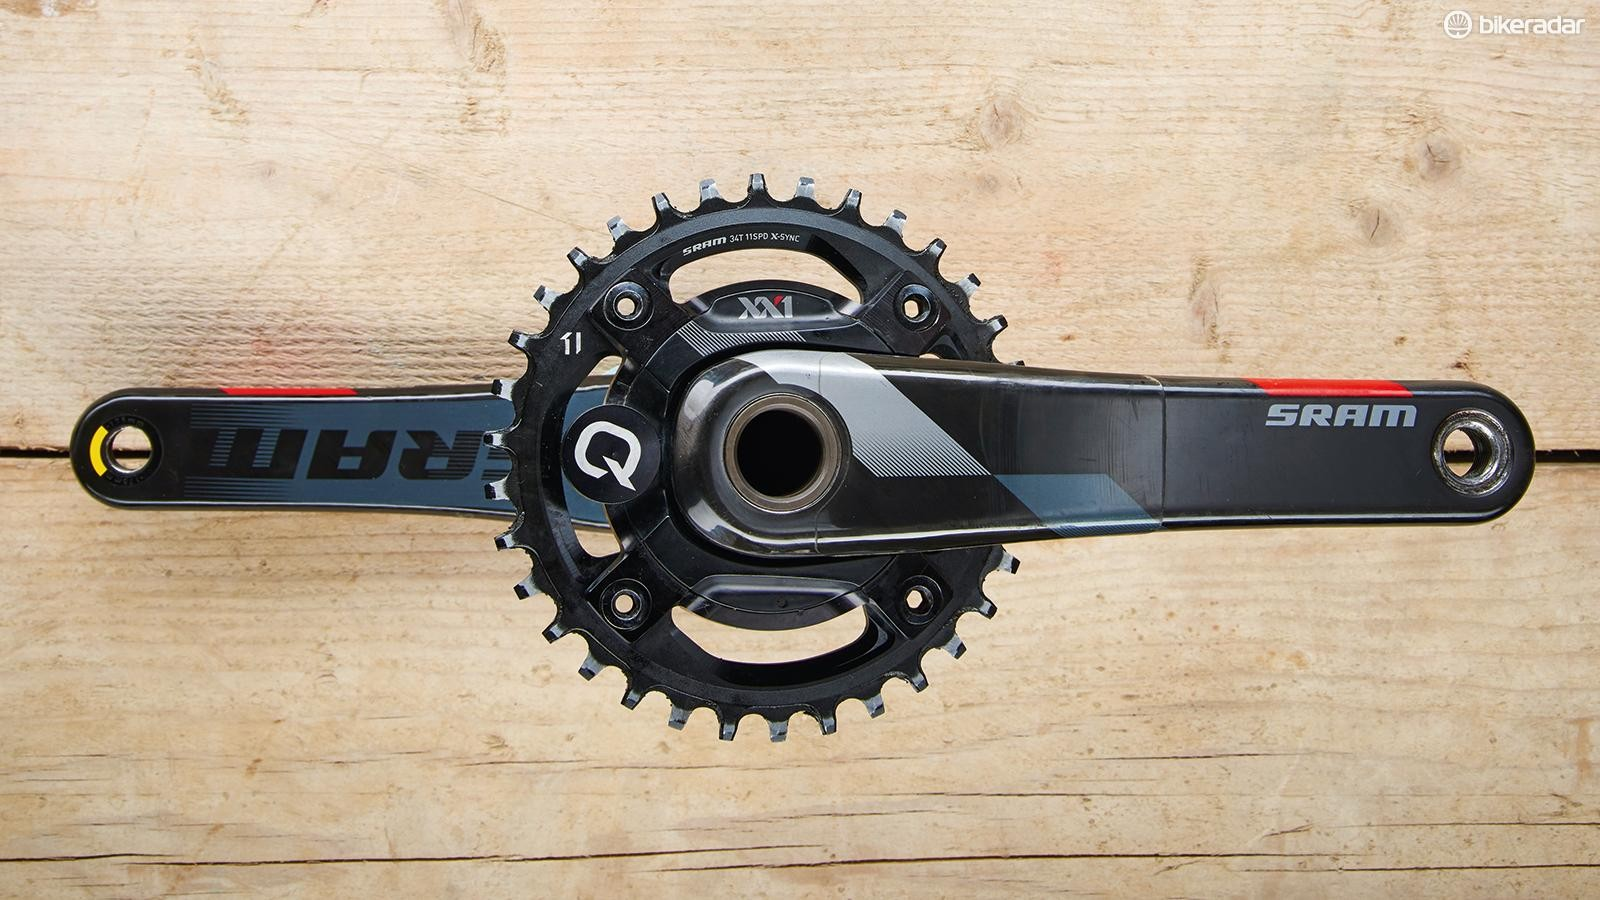 Quarq has built a strong reputation, which the XX1 power meter is only likely to add to